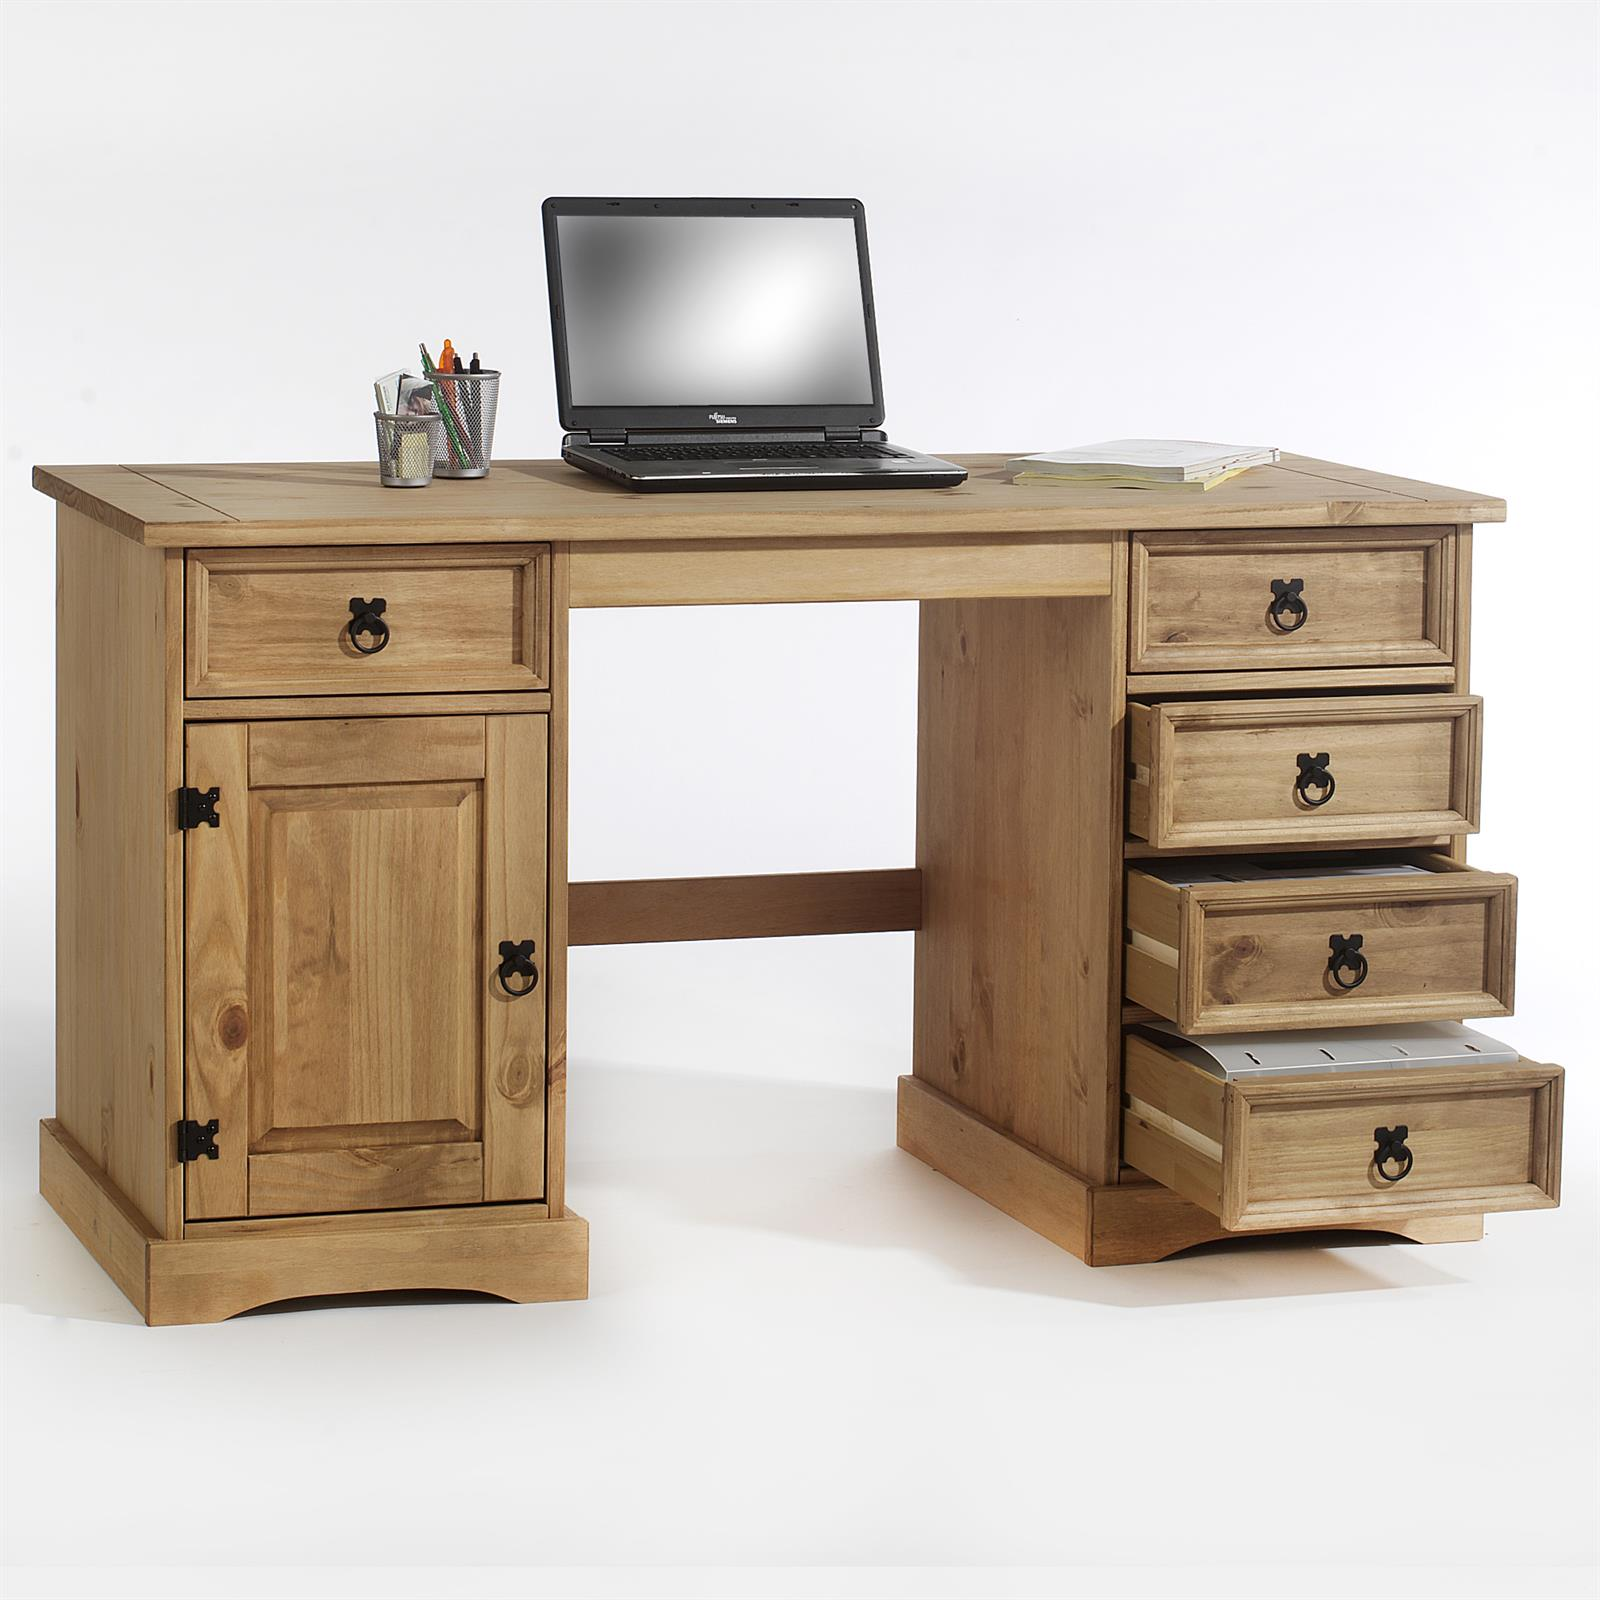 Bureau en pin tequila style mexicain finition cir e for Petit bureau pin